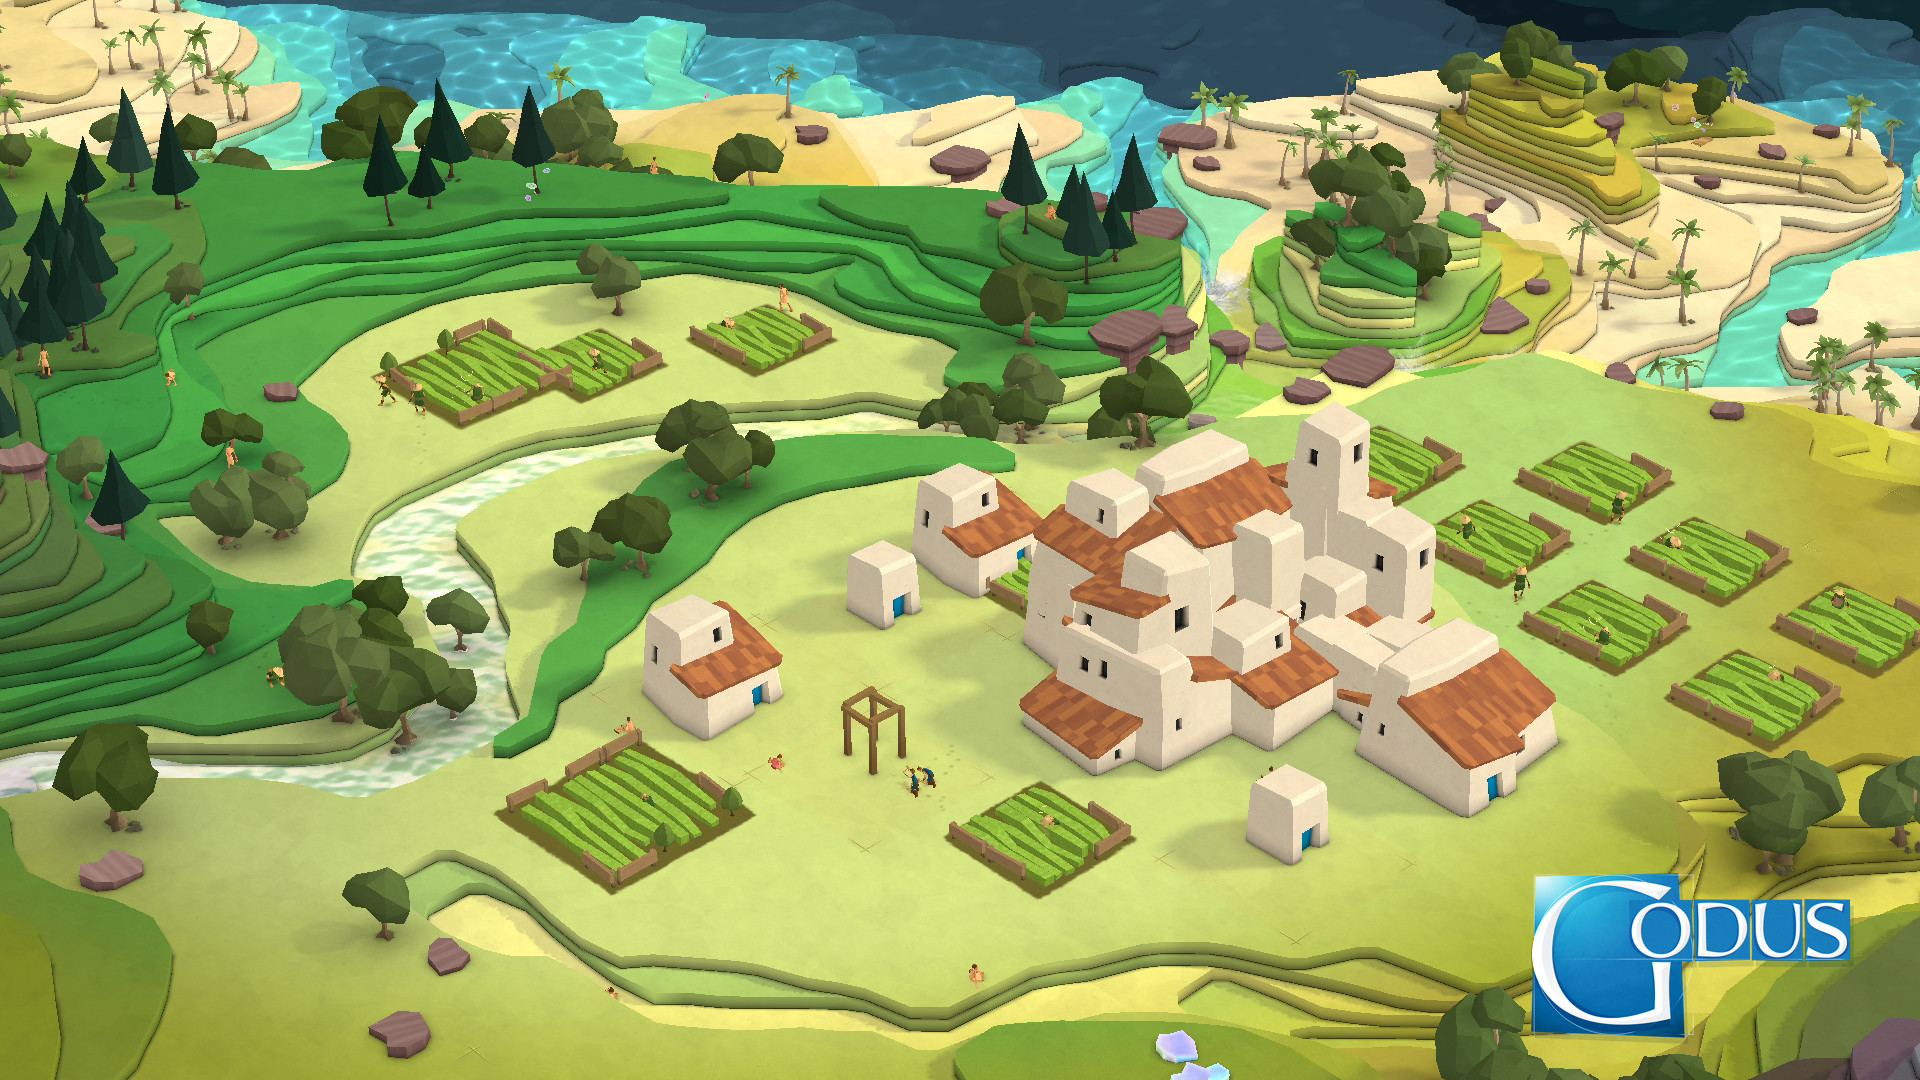 Godus Wars Wallpapers High Quality Download 1920x1080